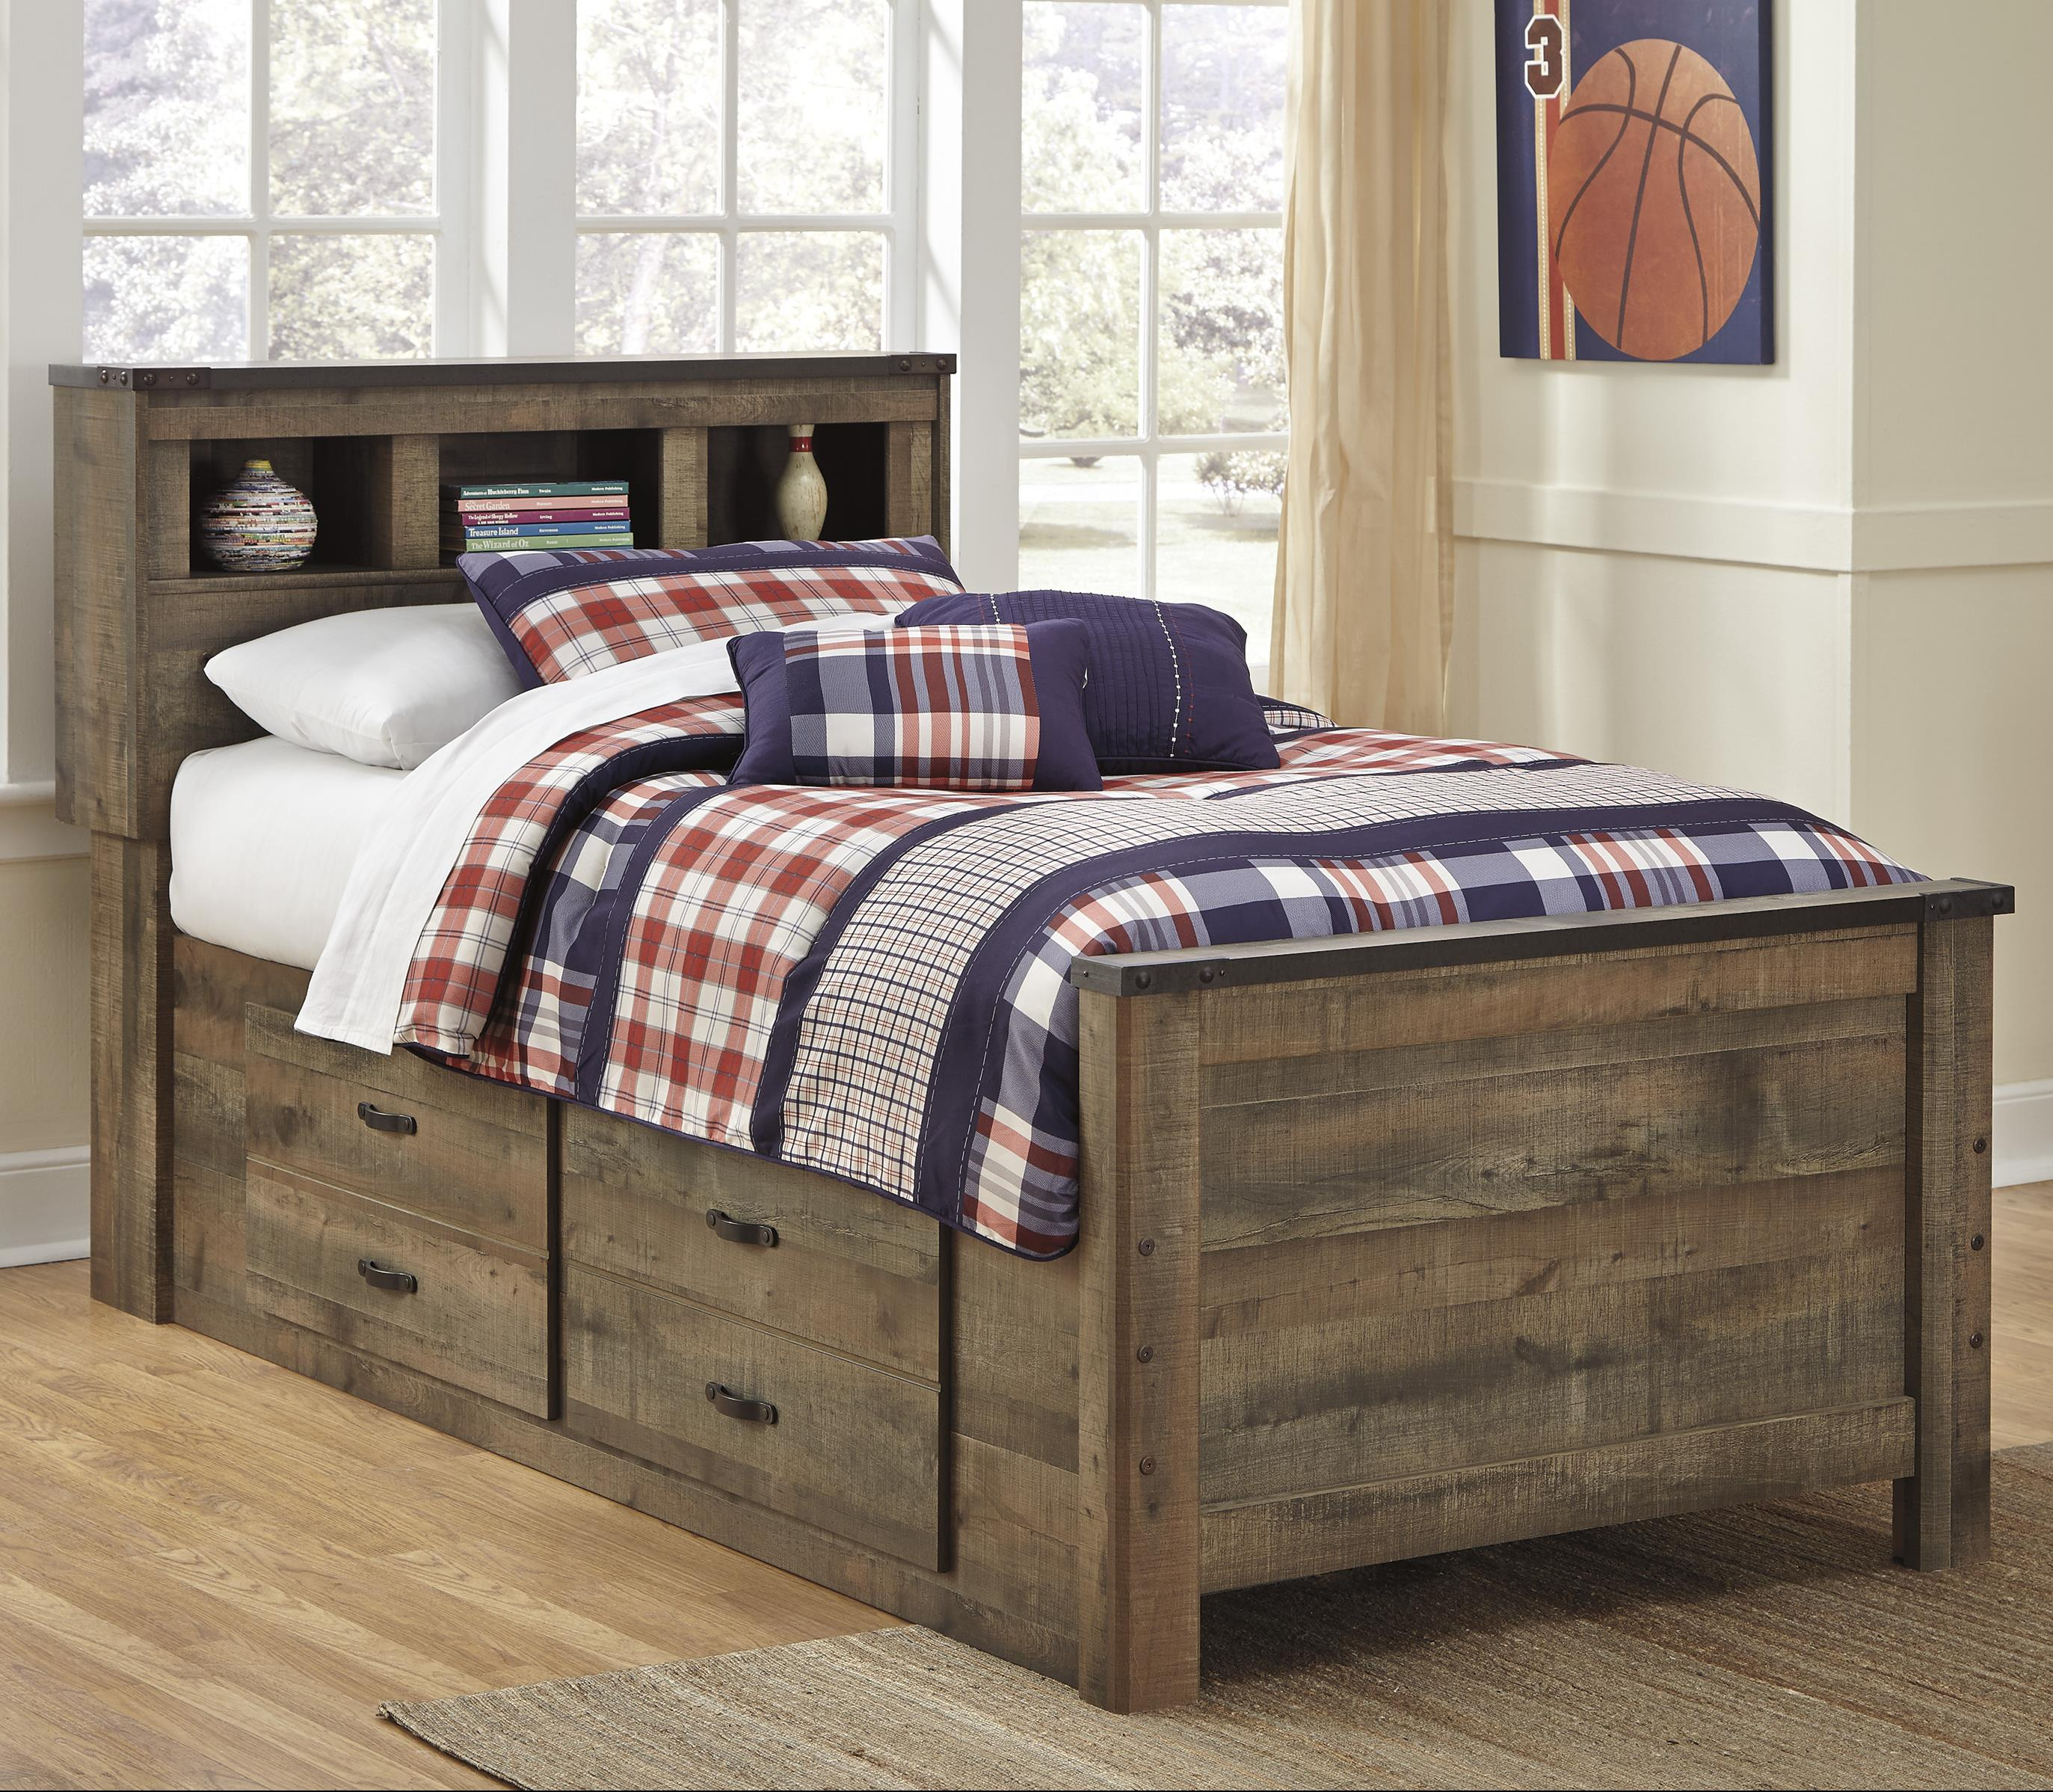 Ashley Signature Design Trinell Rustic Look Twin Bookcase Bed With Under Bed Storage Johnny